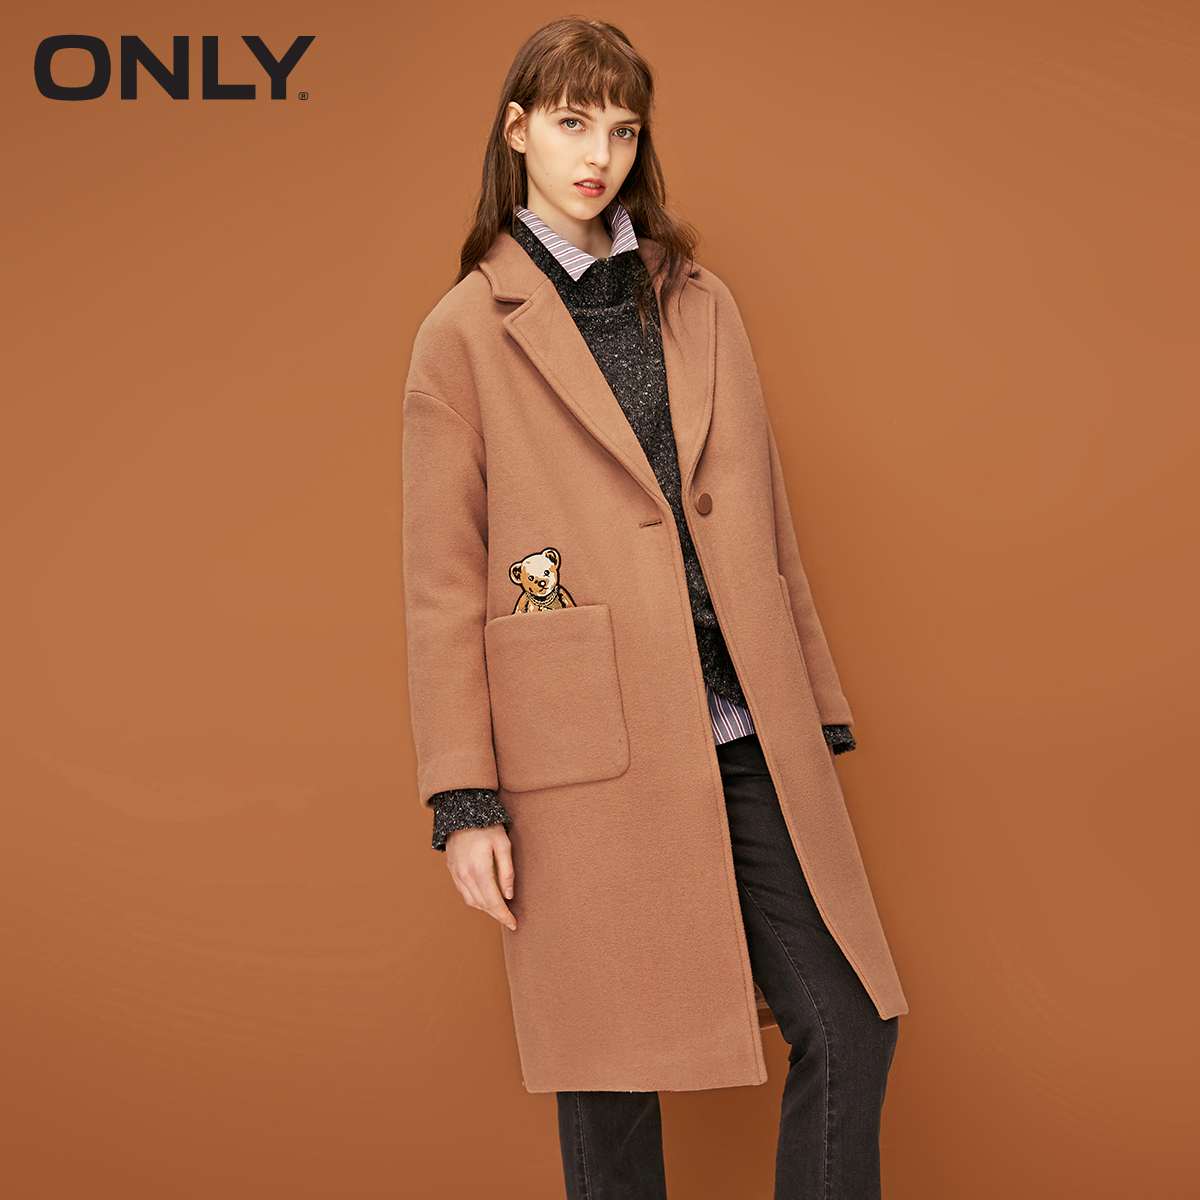 ONLY Women's Autumn New One Button Straight Woolen Coat | 11834S542